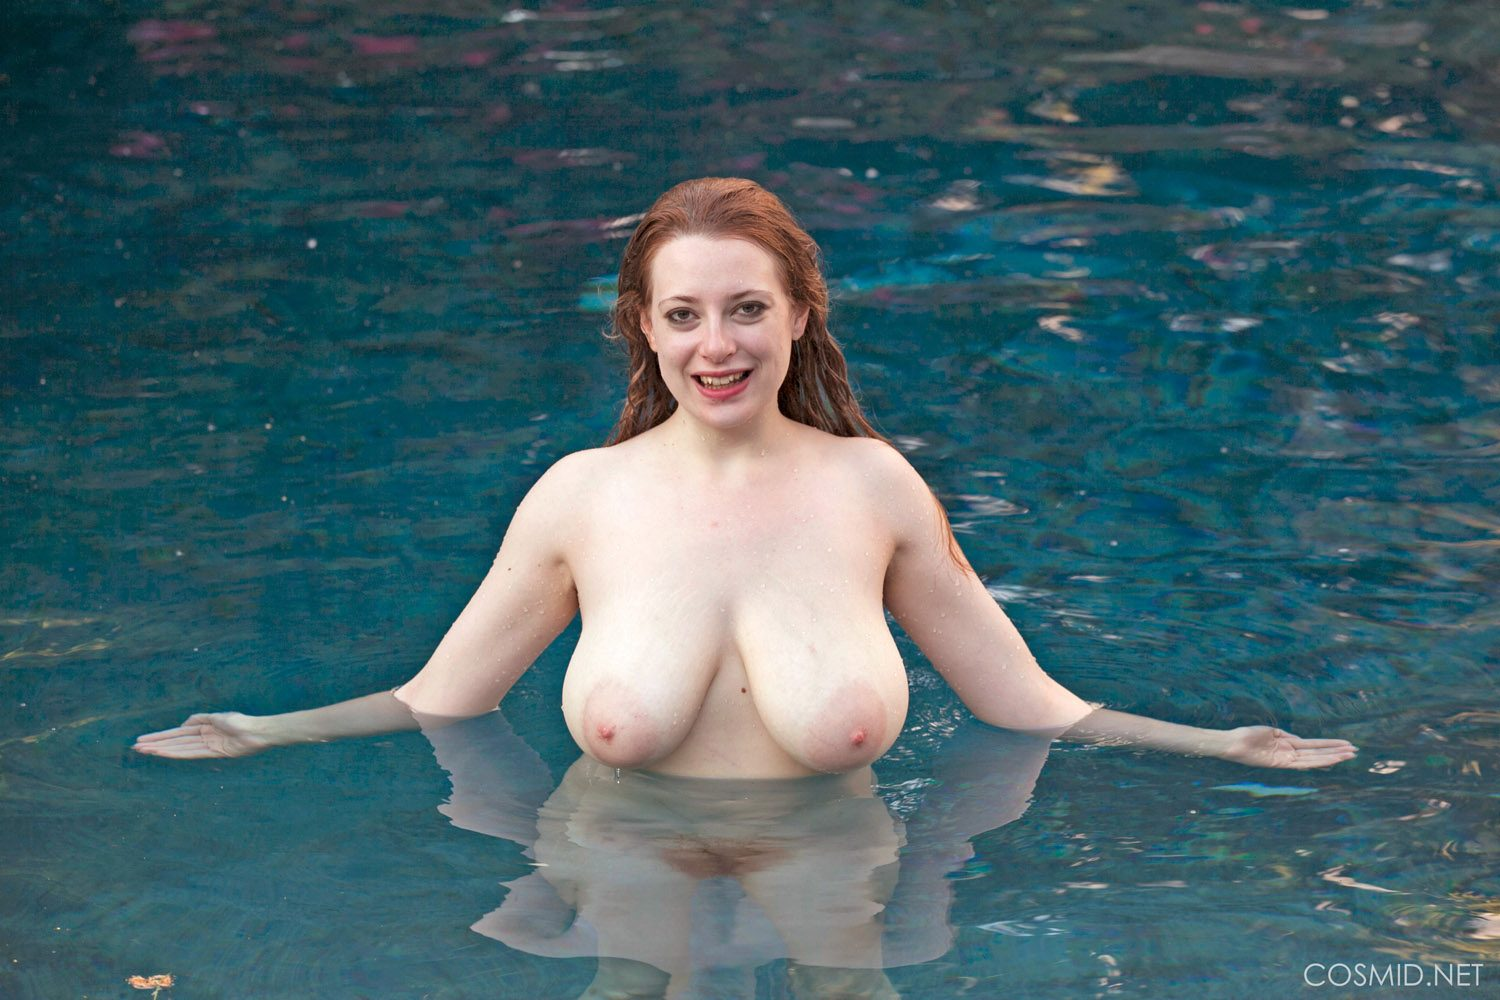 Misha Lowe Naked In The Pool for Cosmid